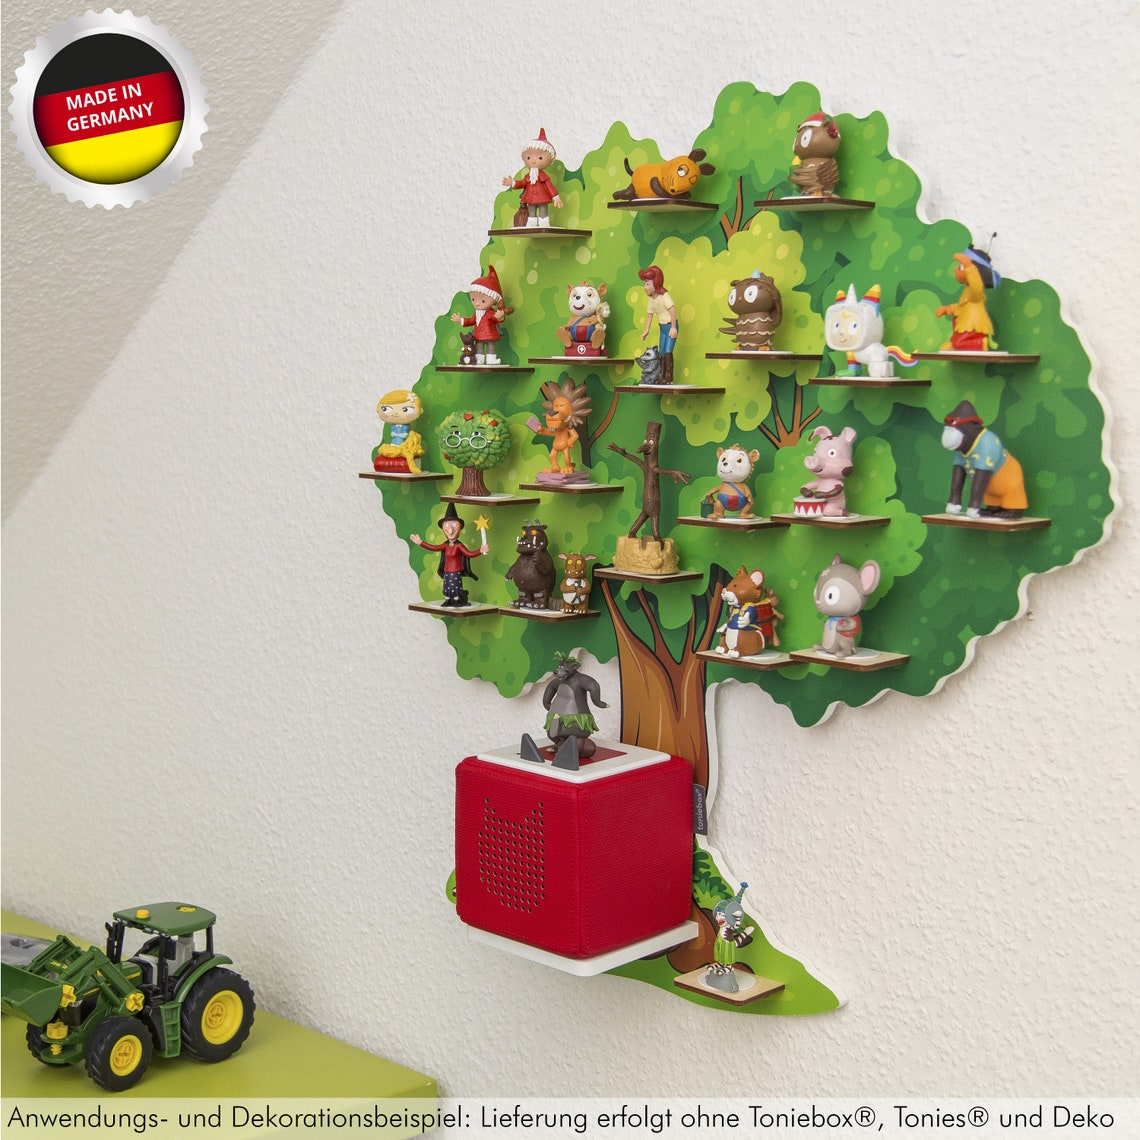 """Magnetic Tonie Regal """"Fairytale Tree"""" ideal for Tonies® figures and Toniebox® / Music Box"""""""